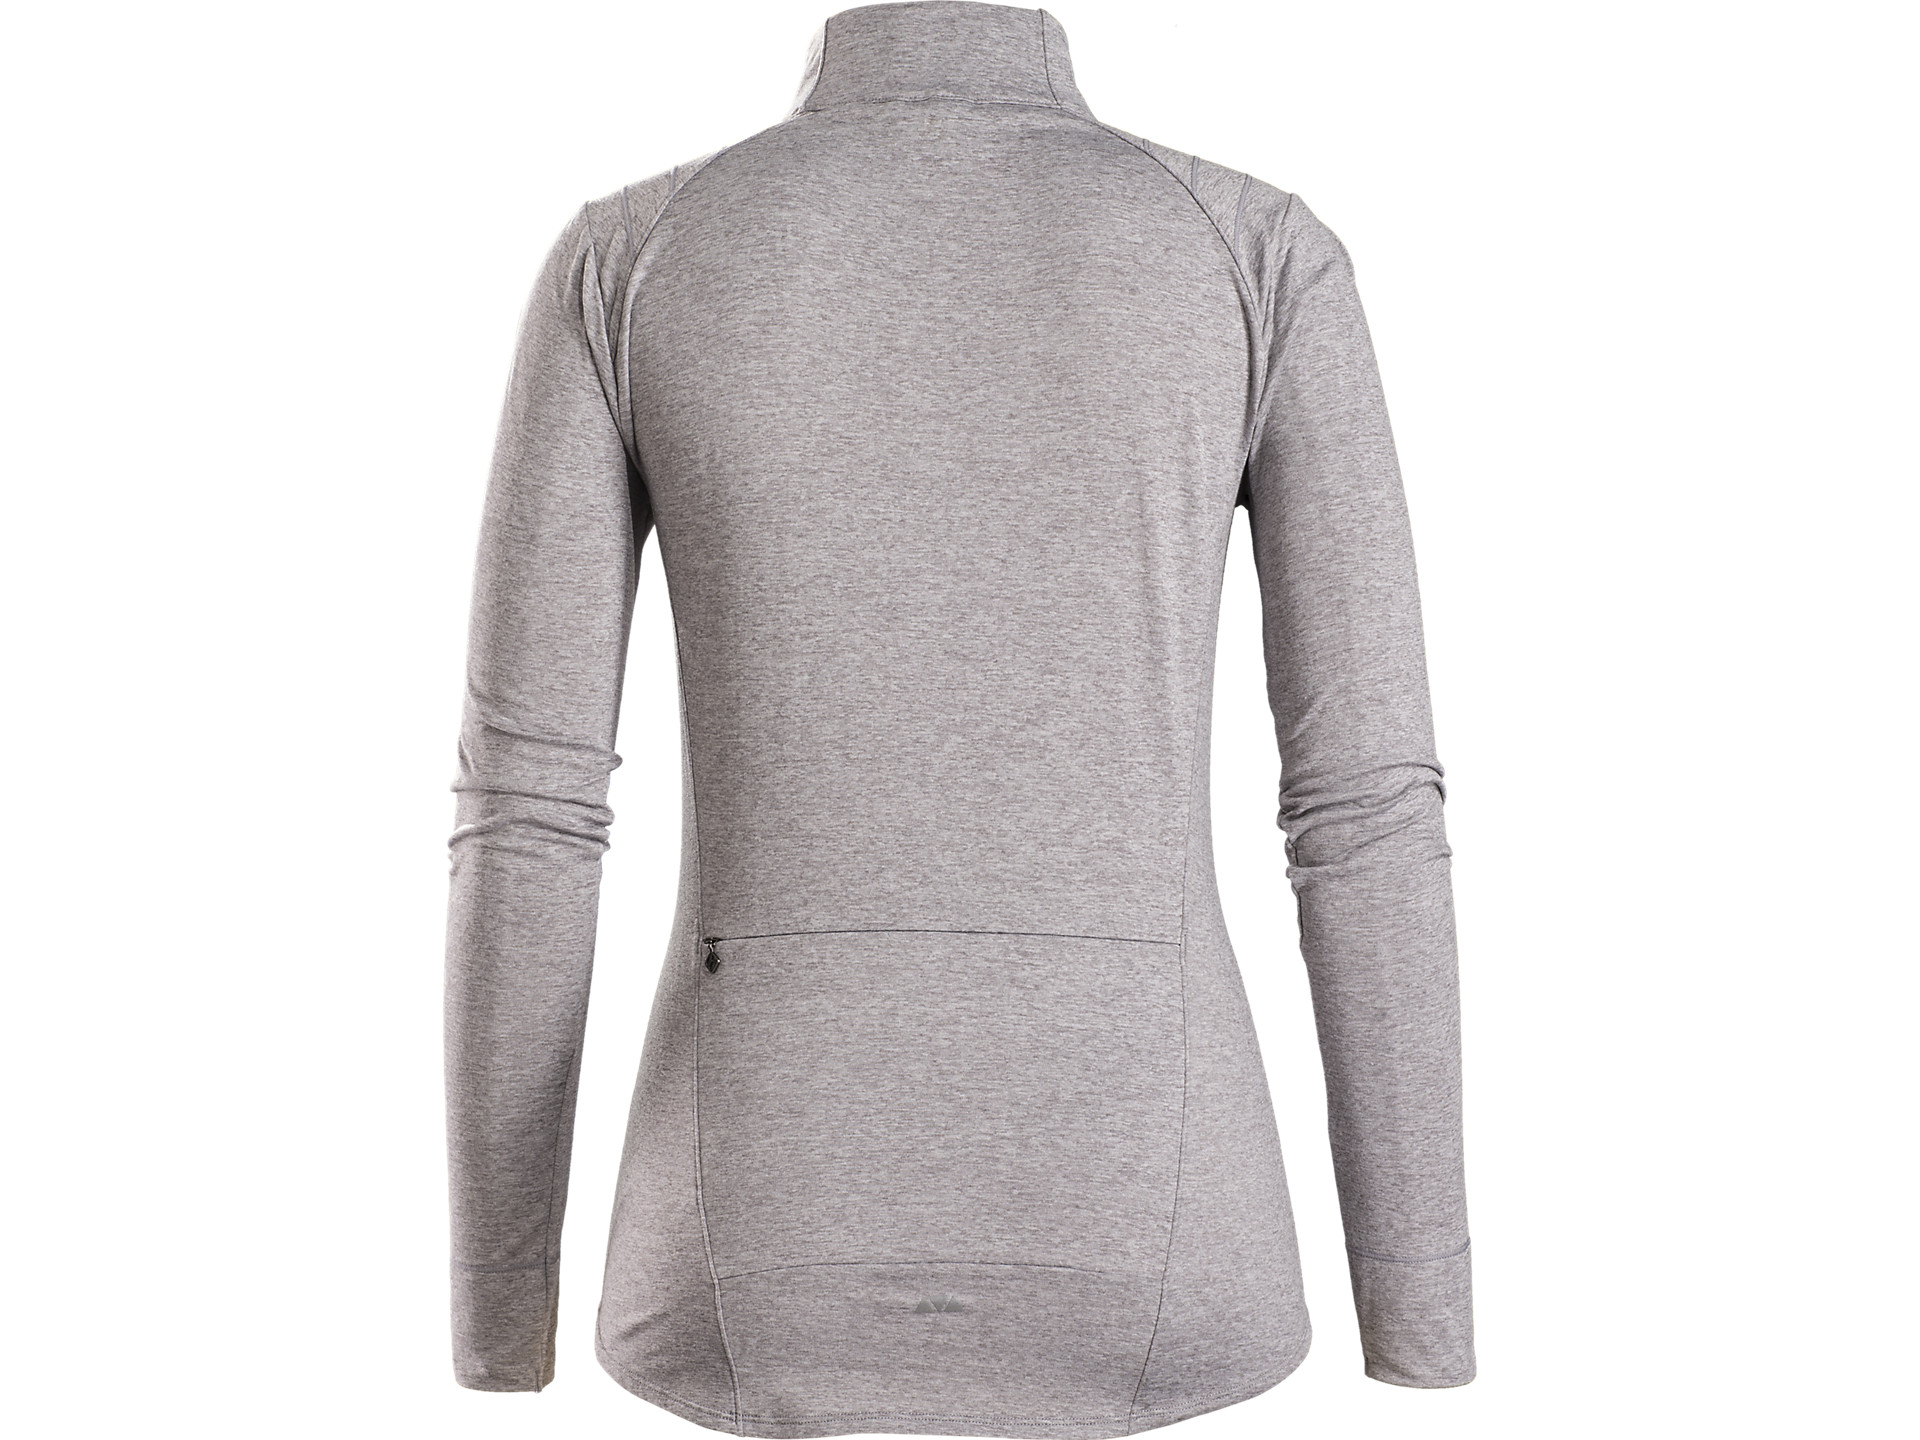 Bontrager Vella Women s Long Sleeve Thermal Cycling Jersey. Overview   Features  Tech specs  Sizing   fit  Reviews  FAQs  Buy. Prev Next 08d1ef7f2